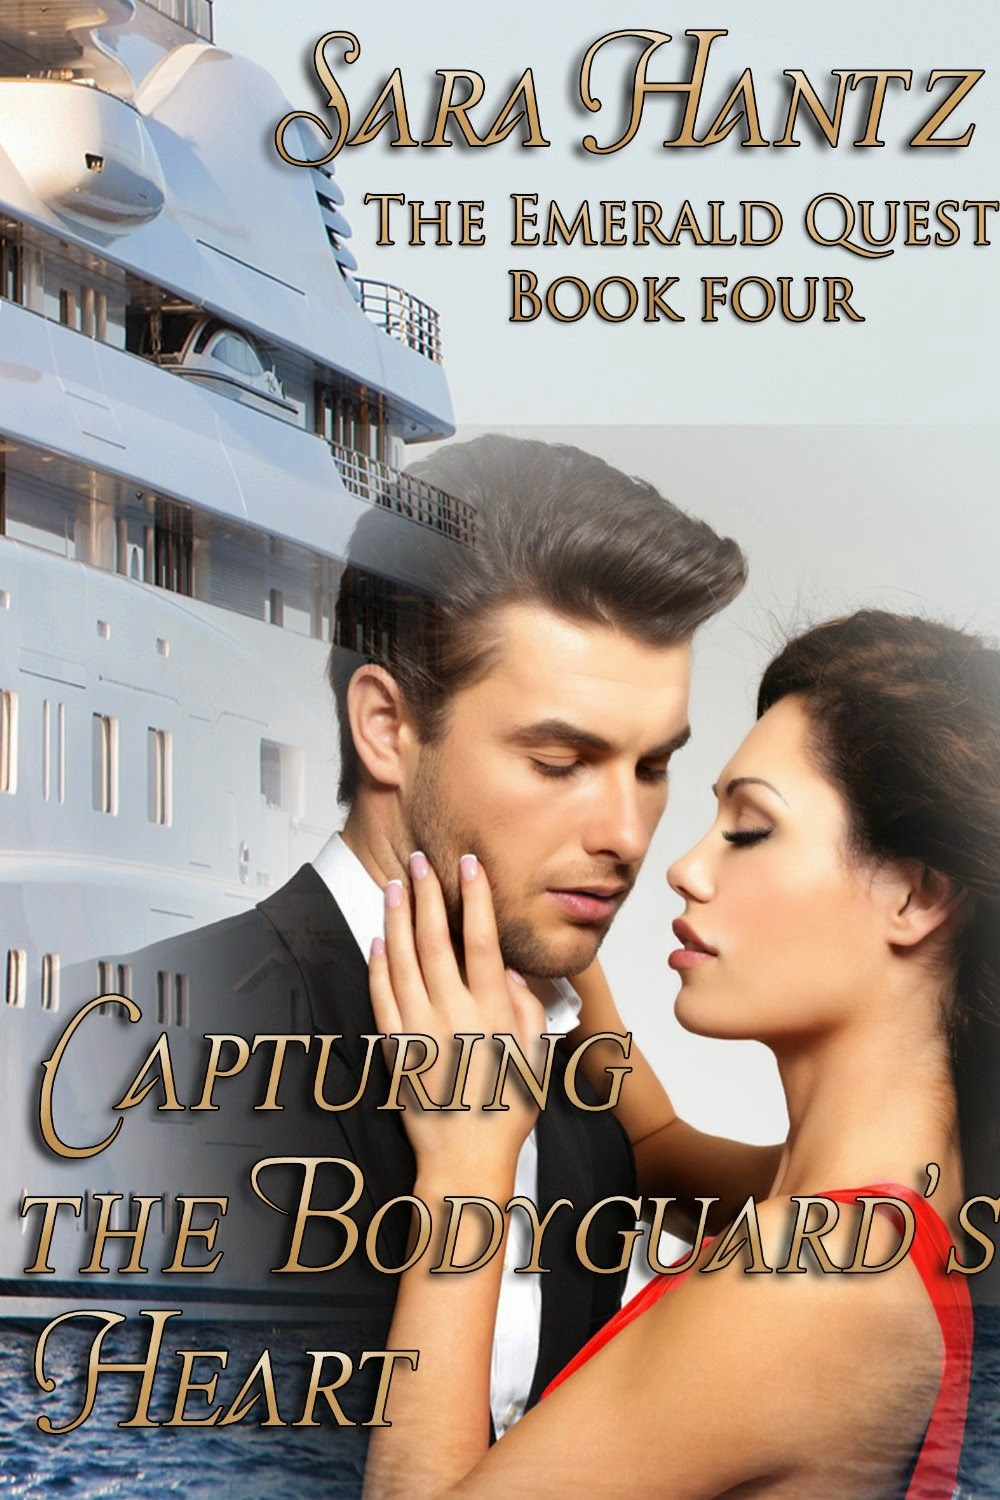 Romance Book Scene: Romance Byte: Sara Hantz's Capturing the Bodyguard's Heart